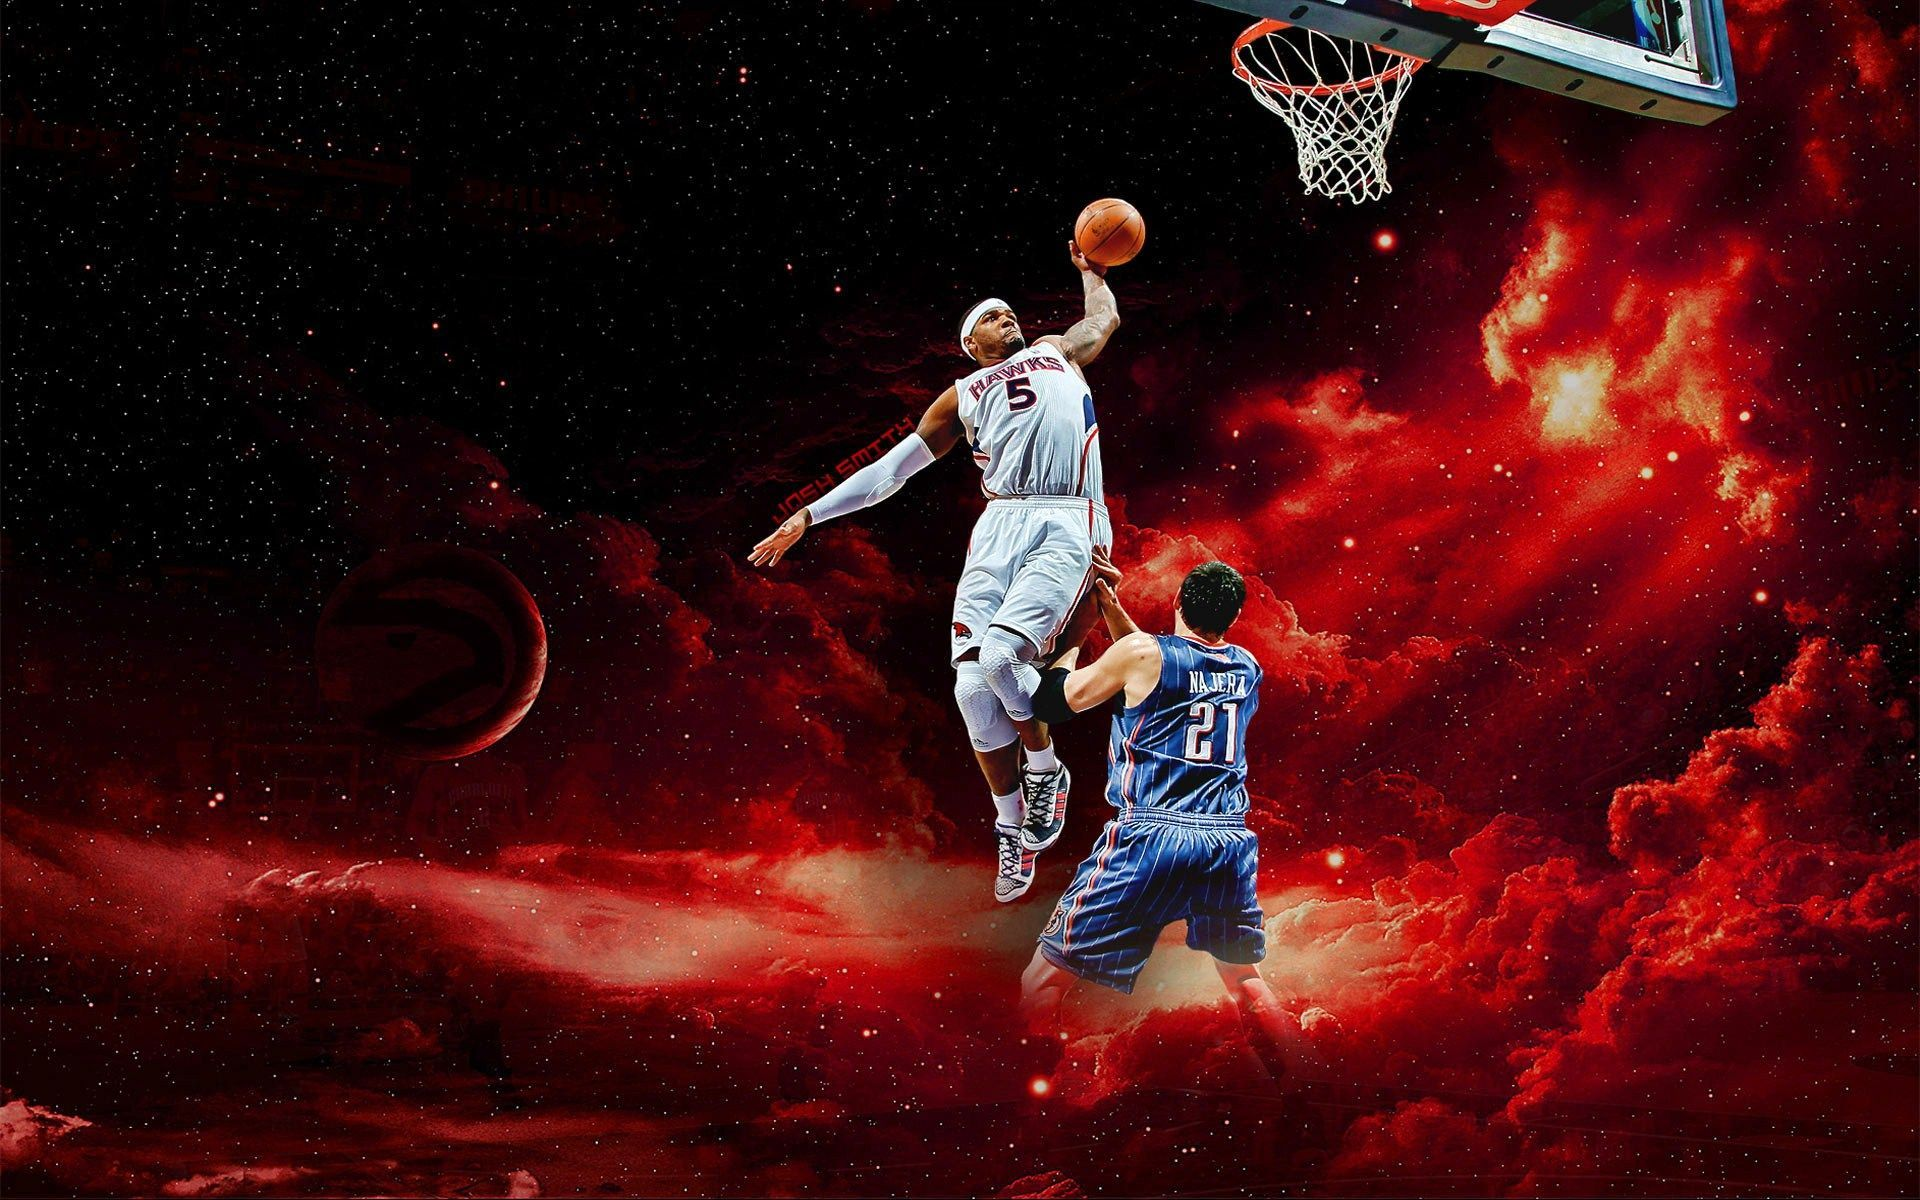 Sports hd wallpapers backgrounds wallpaper 19201200 s p o r t sports hd wallpapers backgrounds wallpaper 19201200 s p o r t pictures wallpapers 47 wallpapers voltagebd Gallery